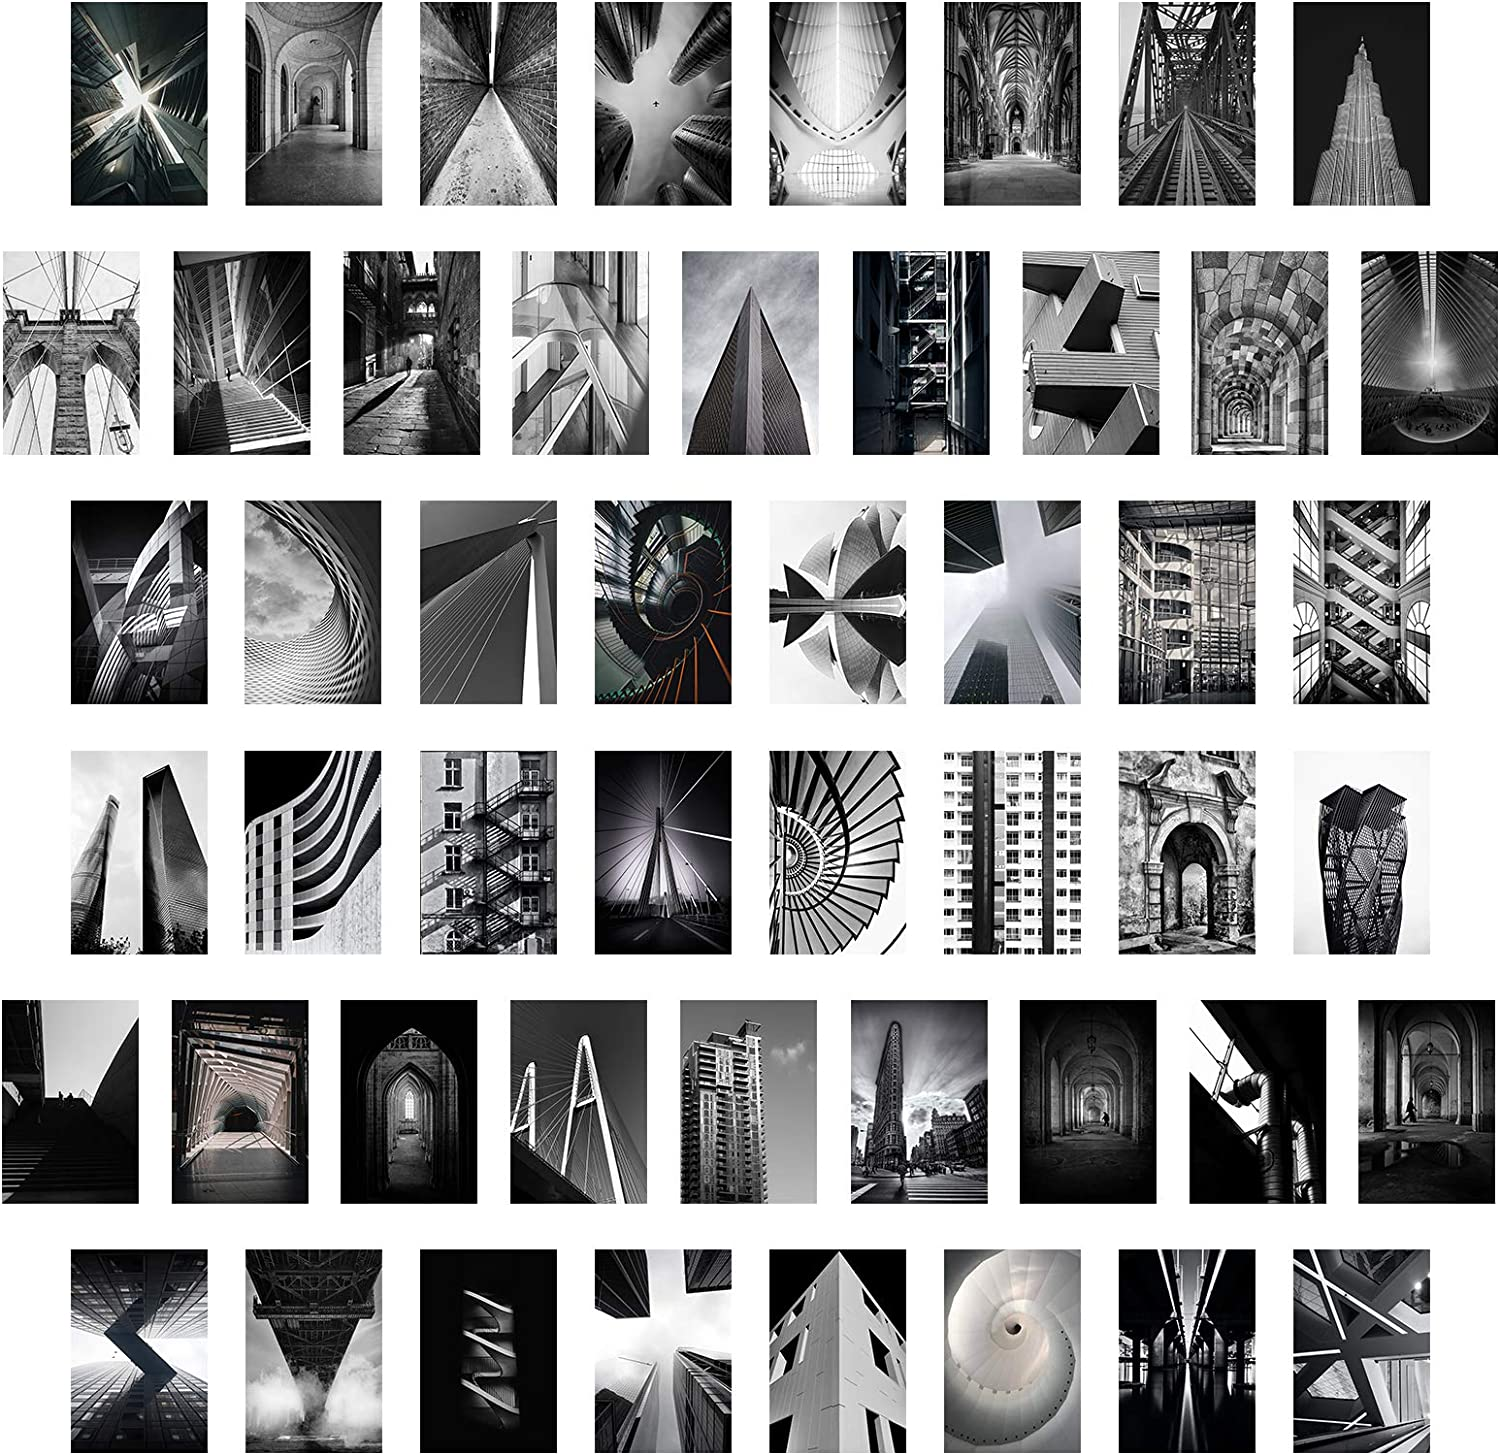 Black White Wall Collage Kit - City Landscape Pictures 50 Set 4x6 Inch Teen Girl Room Decor for Bedroom Aesthetic Home Office Dorm Decoration Photo Collection Modern Building Art Print VSCO Posters